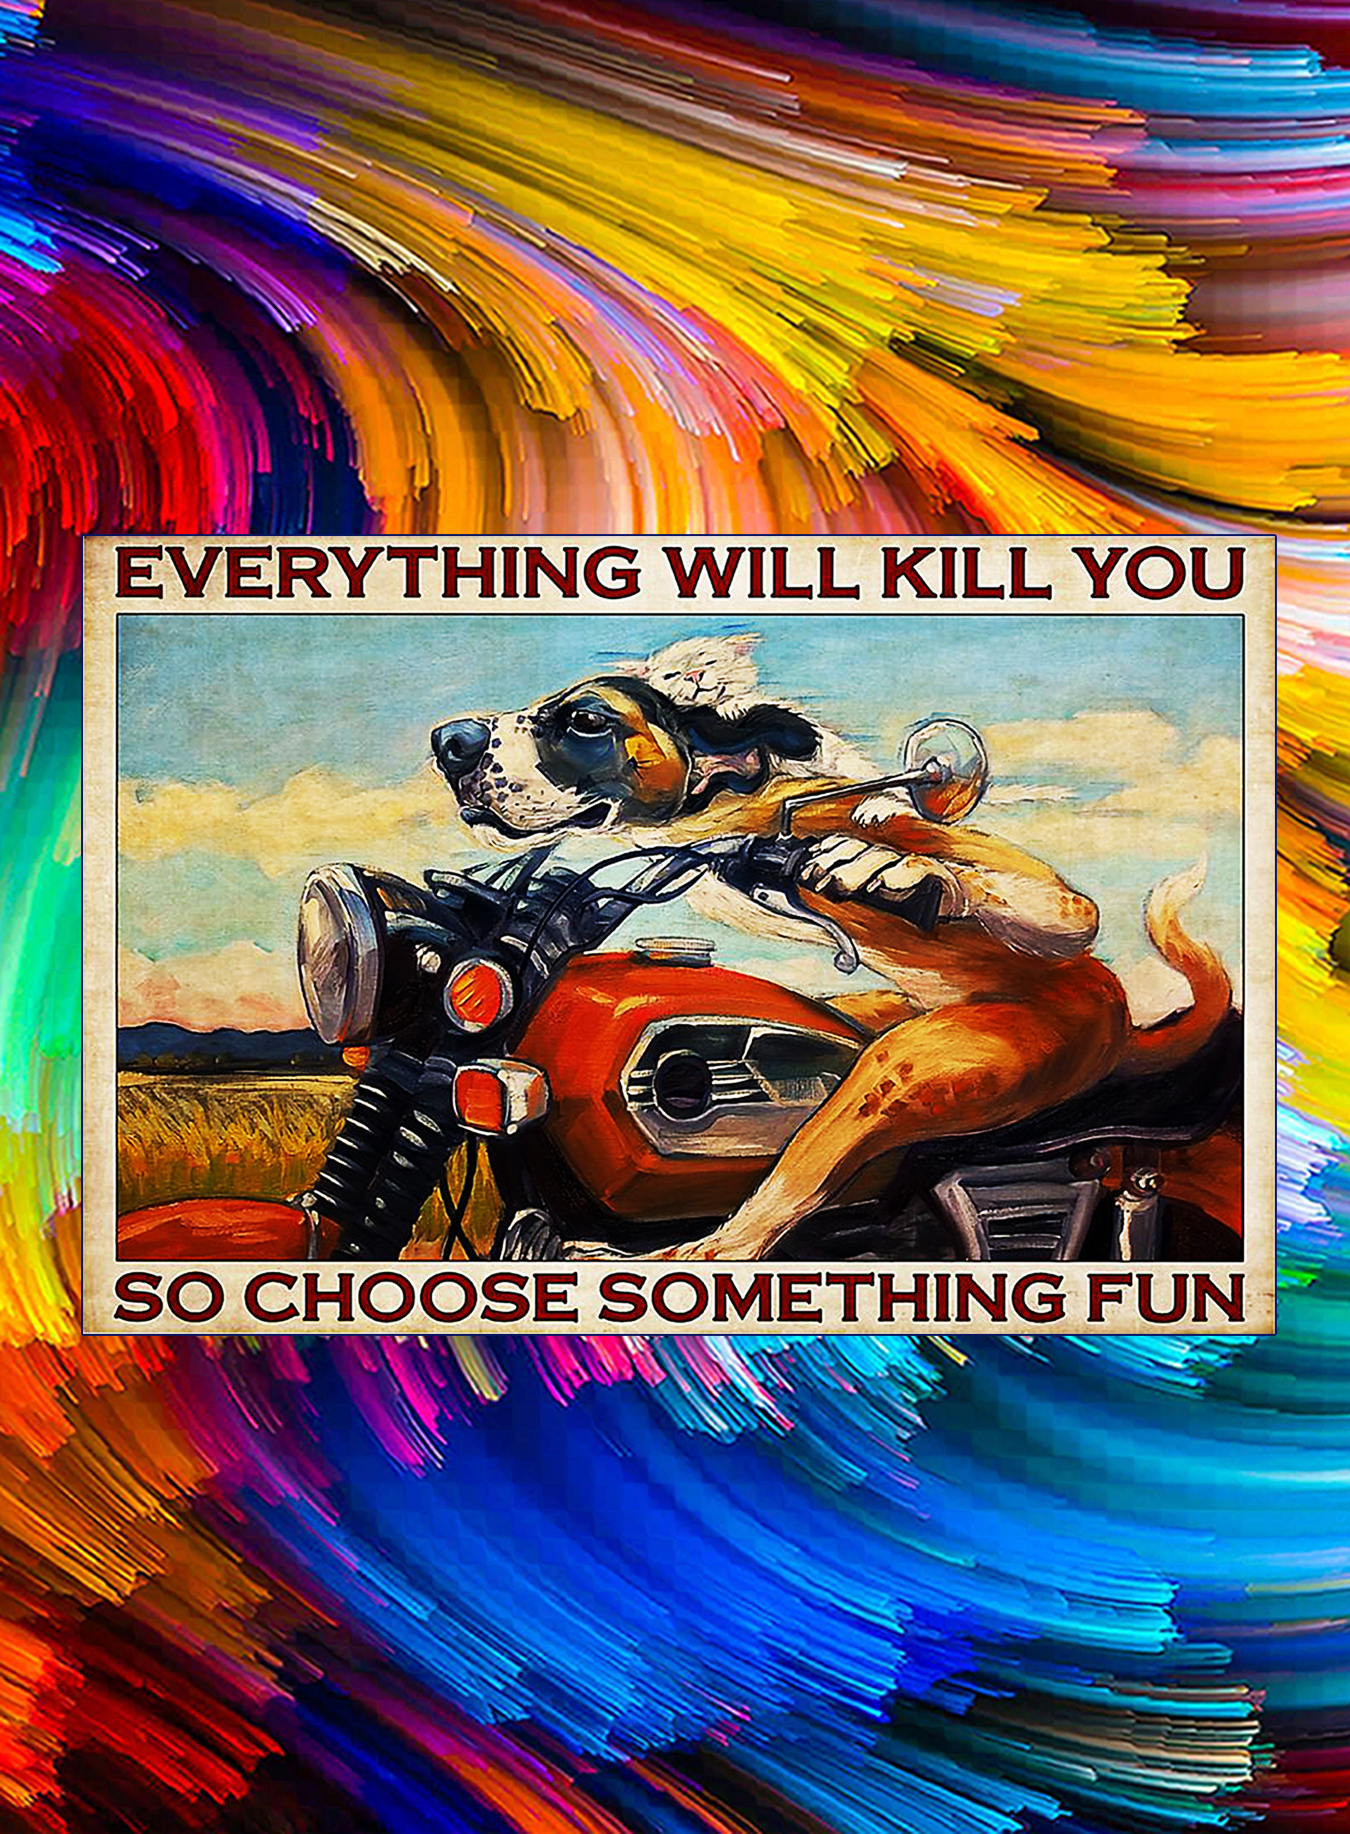 Motorcycle dog and cat everything will kill you so choose something fun poster - A2